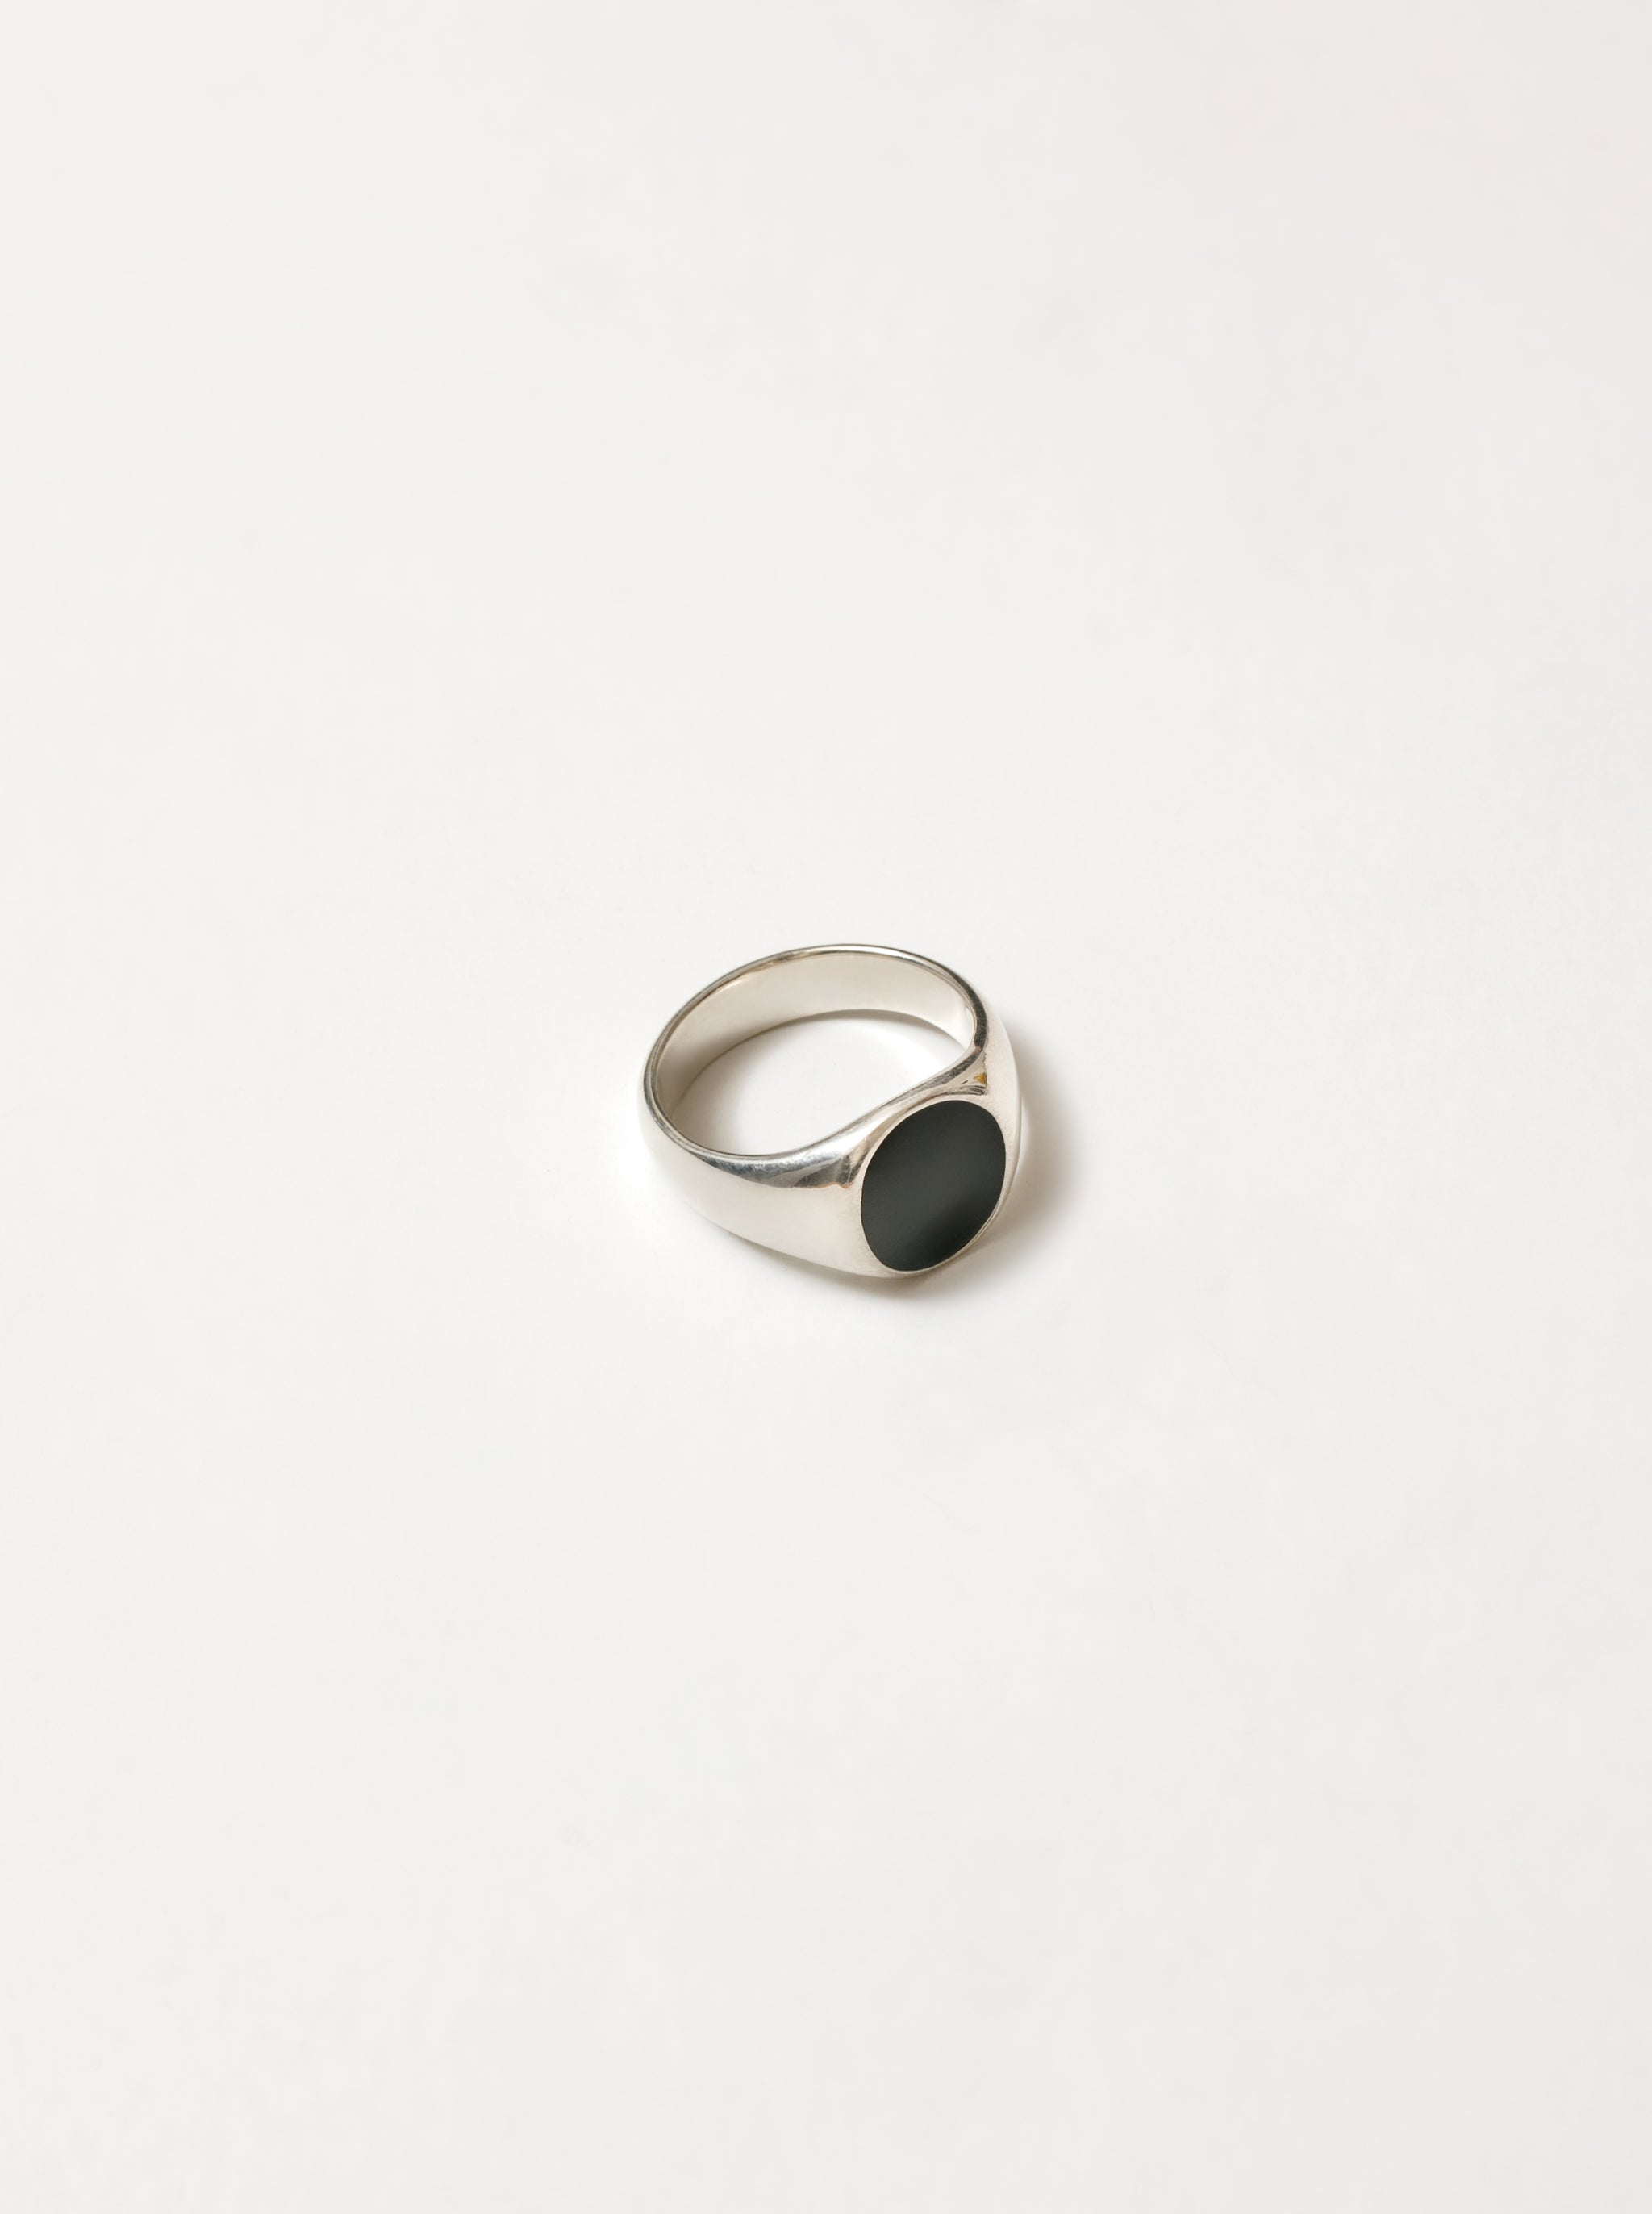 Tosh Signet Ring in Black and Sterling Silver